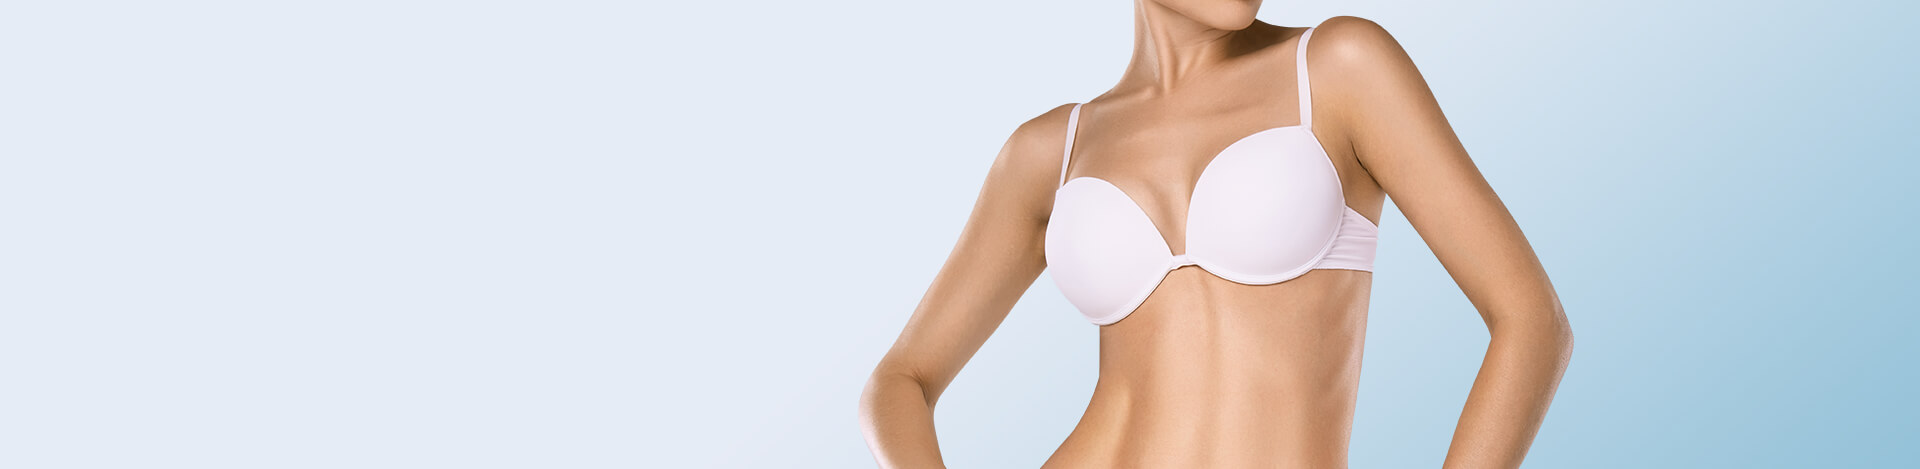 woman posing with youthful look of breasts